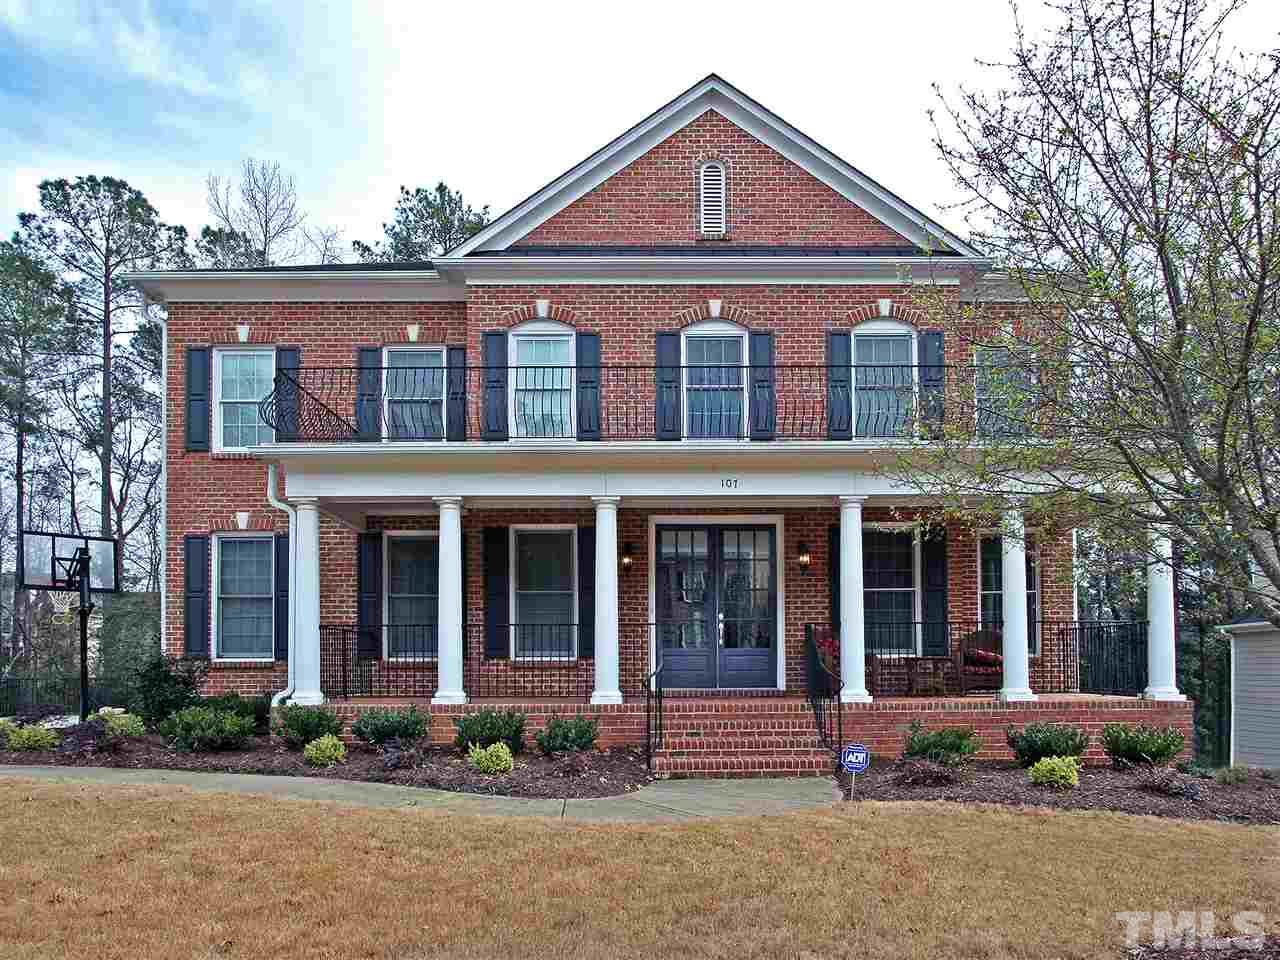 Just over the Cary line and minutes from Apex! Stately brick-front executive home with unfinished walk-out basement. Side-entry 3-car garage. Wonderful backyard with large paver patio and firepit. Backs to wooded buffer. Gourmet's dream kitchen with large island and gas cooktop. Lots of cabinet space. Open-concept floorplan. 4 Bedrooms + Large Bonus Rm. Family room has fireplace and built-ins. Hardwoods on main level and in bonus. Convenient home office with French doors. Rocking-chair-style front porch.